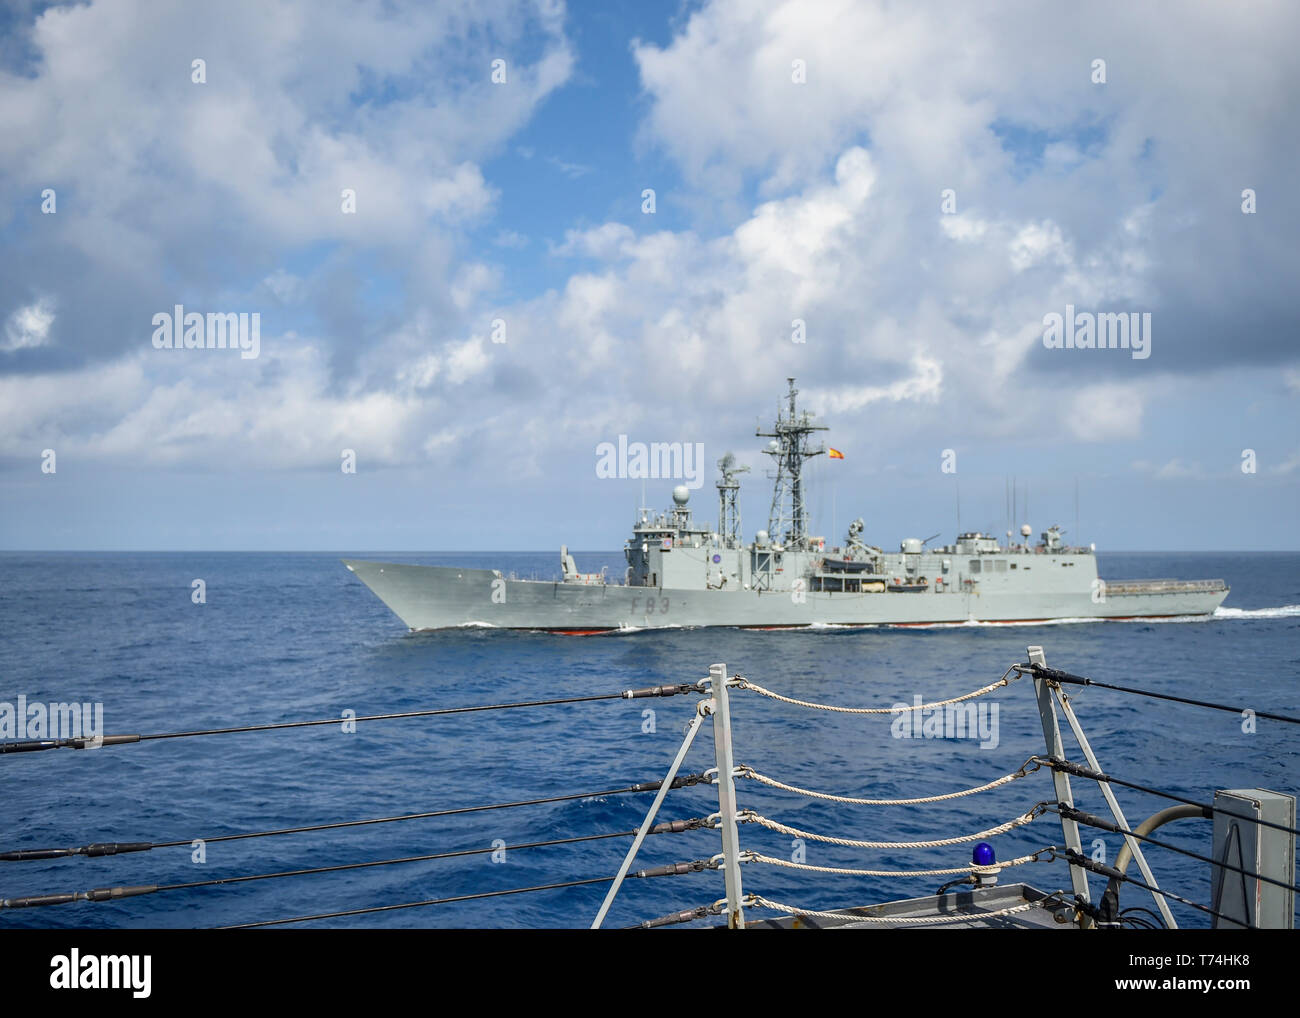 190501-N-SS350-0001 IONIAN SEA (May 1, 2019) The Spanish Santa Maria-class frigate Numancia (F 83) pulls alongside the Arleigh Burke-class guided-missile destroyer USS Bainbridge (DDG 96). Bainbridge is underway as part of the Abraham Lincoln Carrier Strike Group (ABECSG) deployment in support of maritime security cooperation efforts in the U.S. 5th, U.S. 6th and U.S. 7th Fleet areas of operation. With Abraham Lincoln as the flagship, deployed strike group assets include staffs, ships and aircraft of Carrier Strike Group 12 (CSG 12), Destroyer Squadron 2 (DESRON 2) and Carrier Air Wing 7 (CVW  - Stock Image